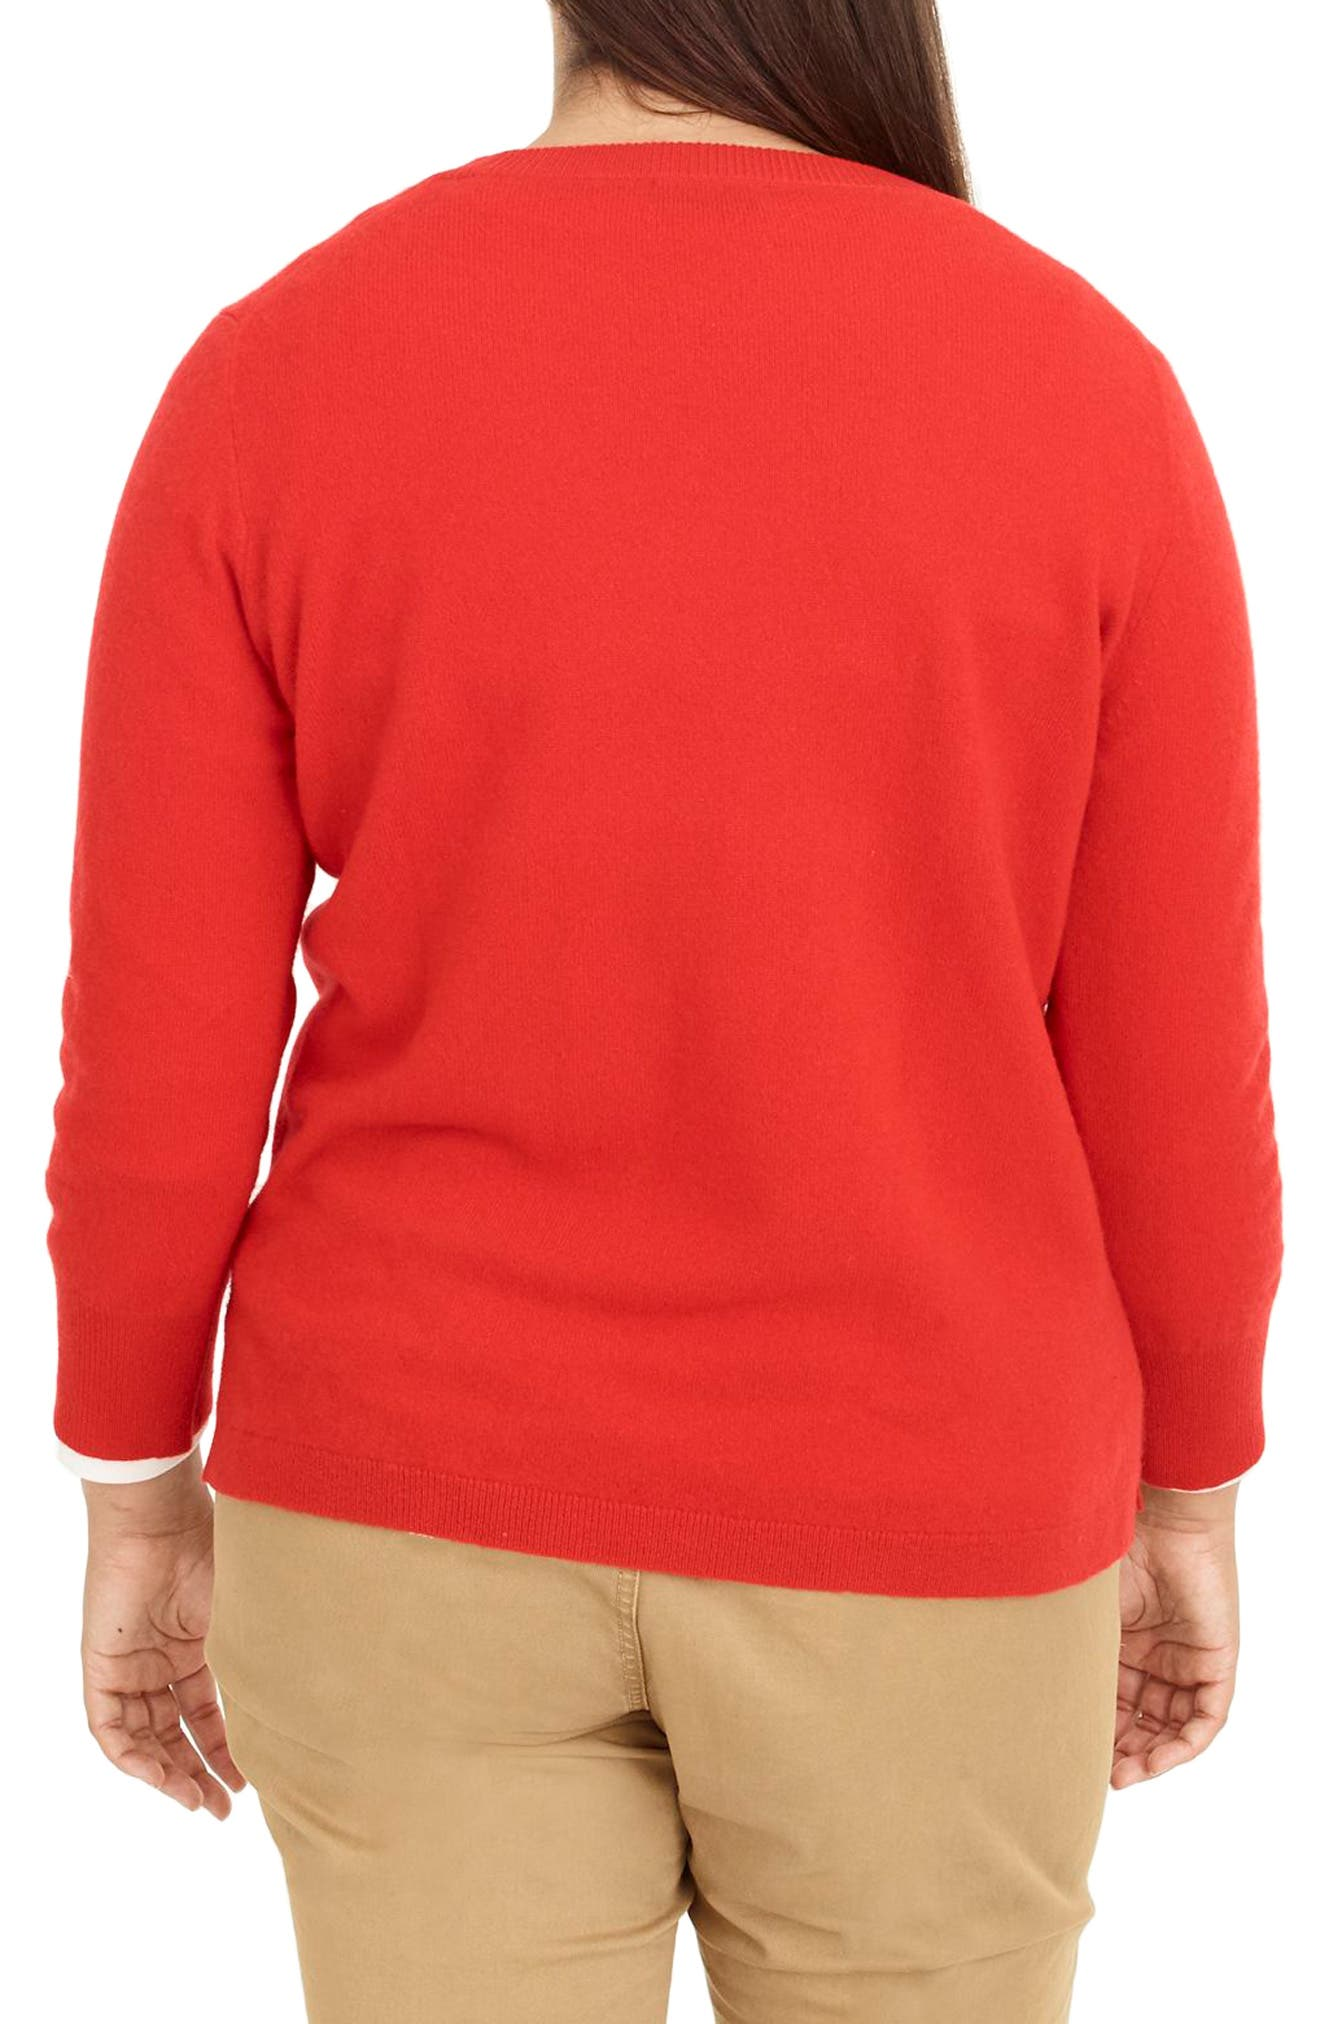 Leopard Heart Everyday Cashmere Sweater,                             Alternate thumbnail 7, color,                             600